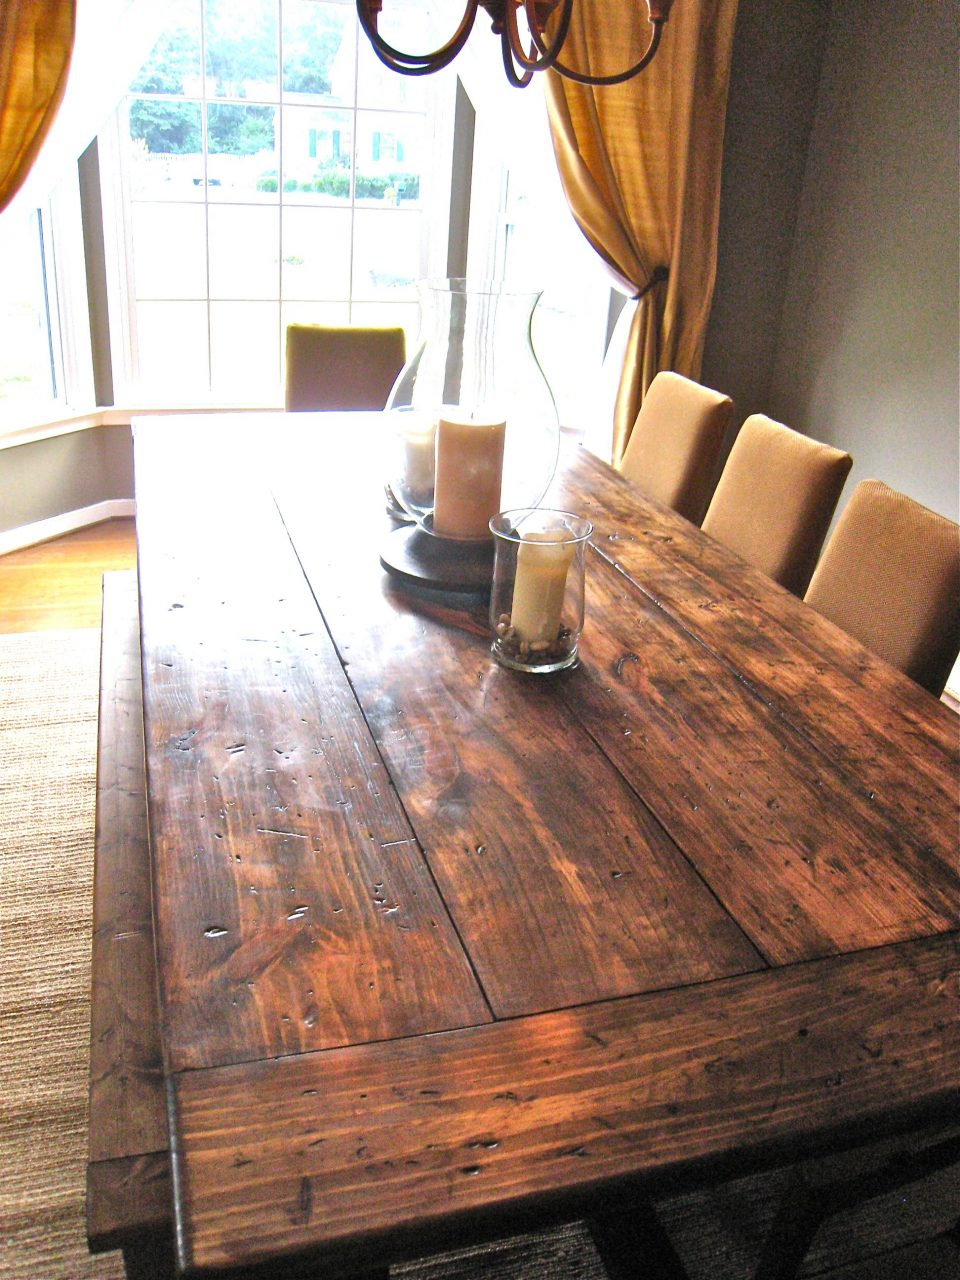 My Hub Just Built This Distressed Farmhouse Table To Complete Our